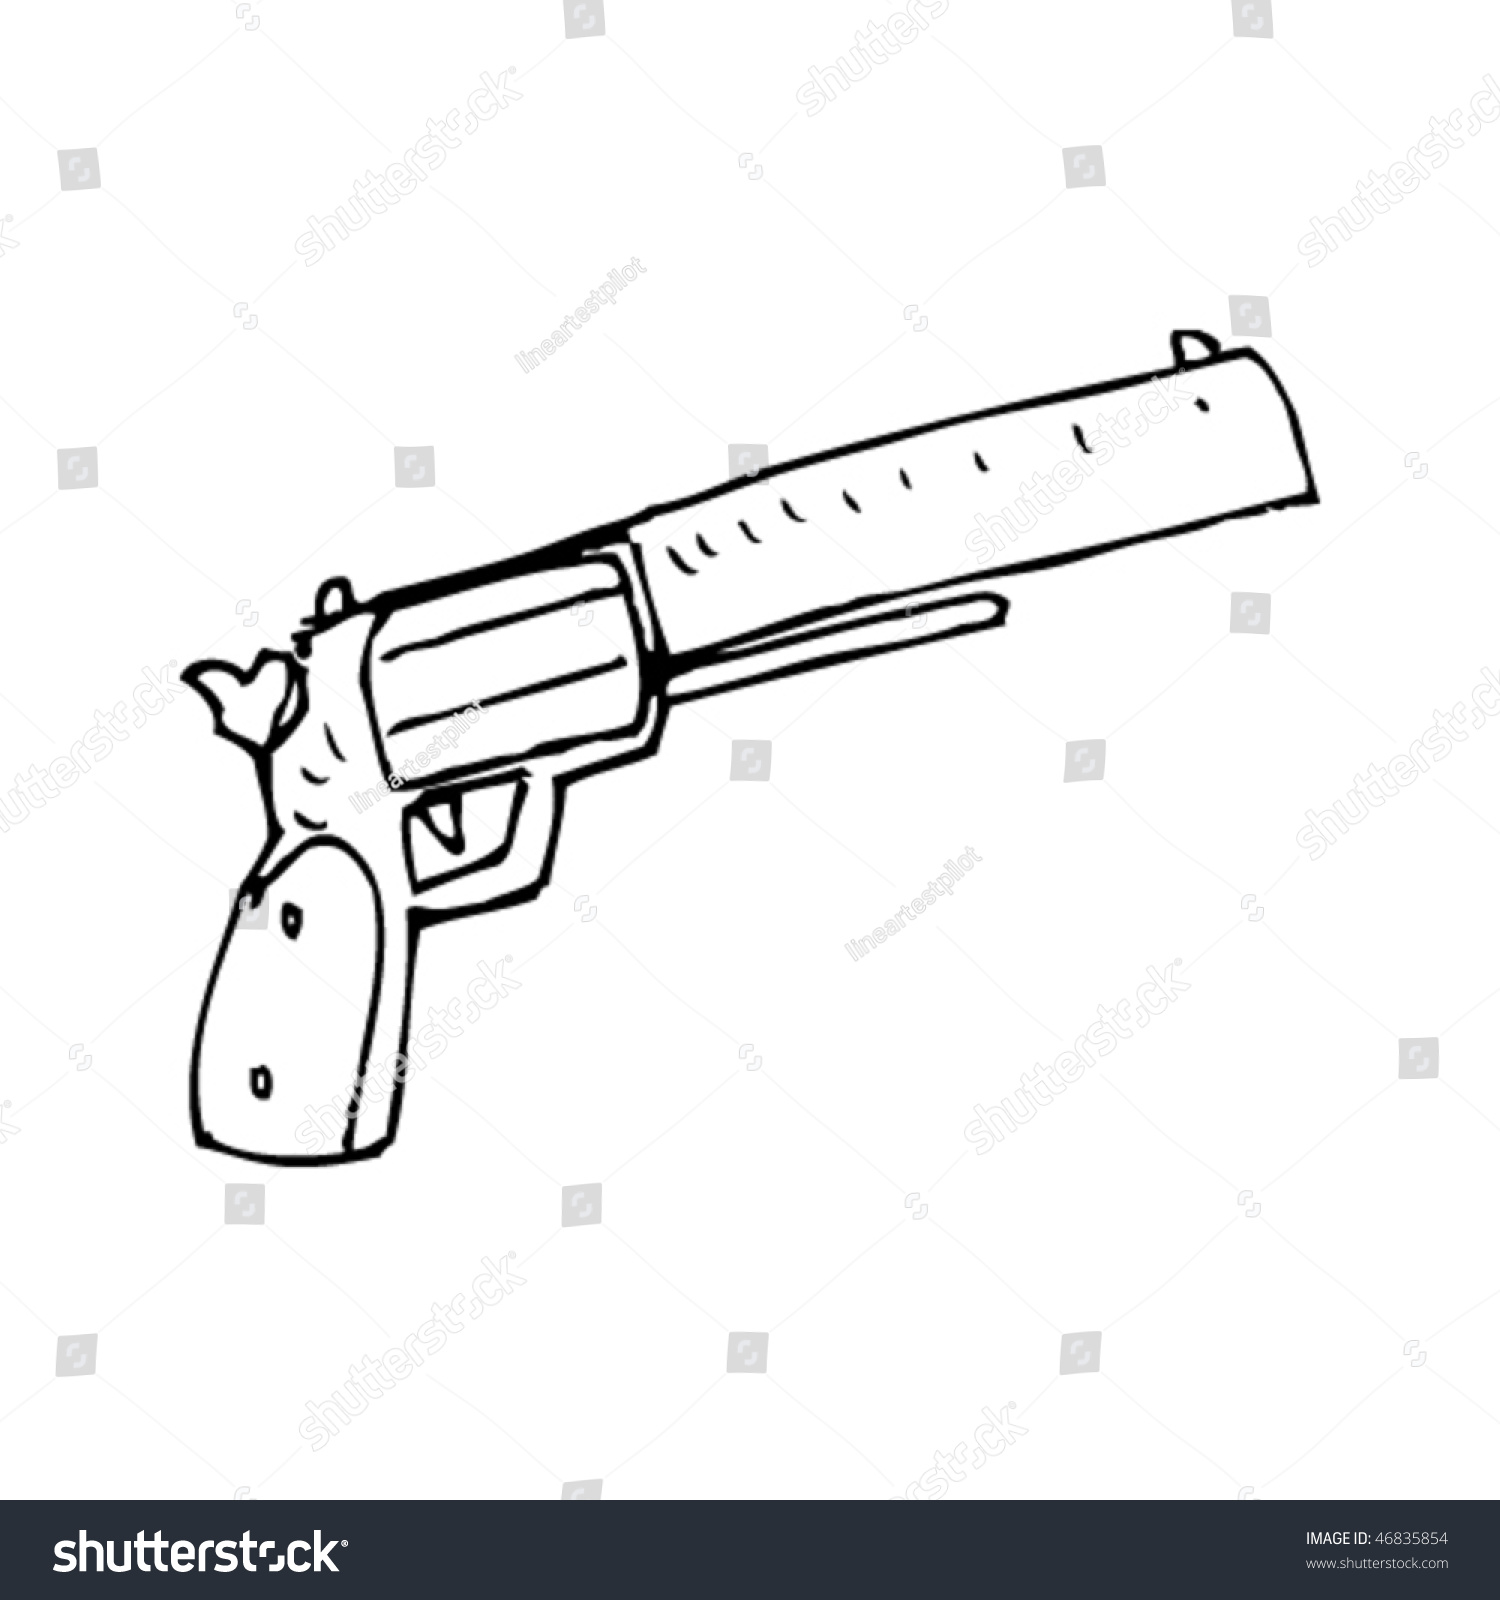 One Line Art Gun : Rough line drawing gun stock vector shutterstock